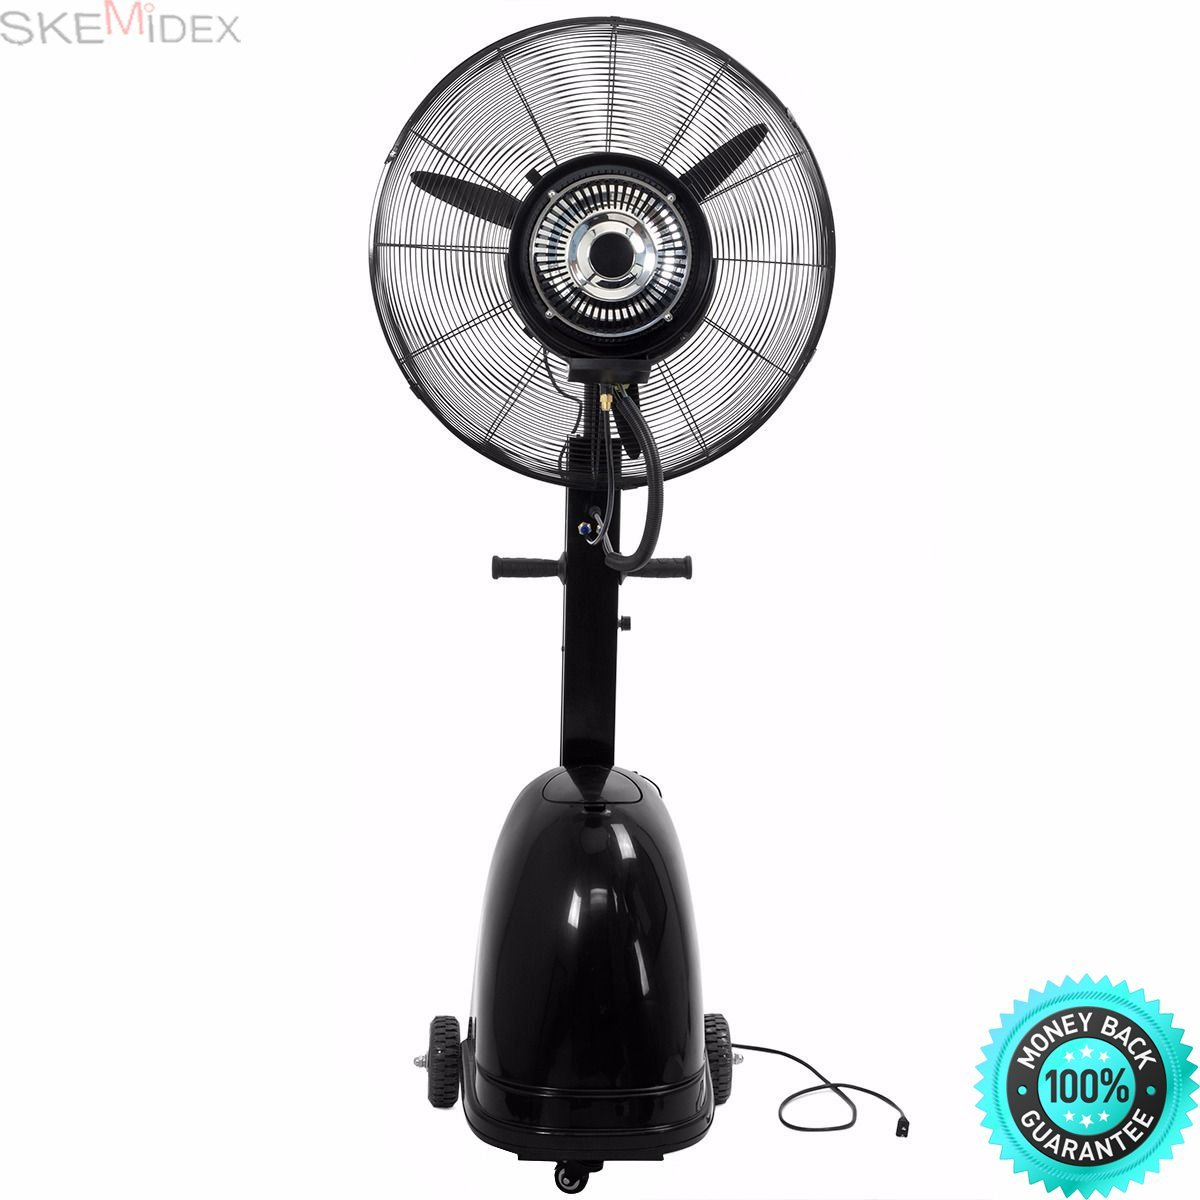 Large Indoor Fans Cheap Large Industrial Fans Find Large Industrial Fans Deals On